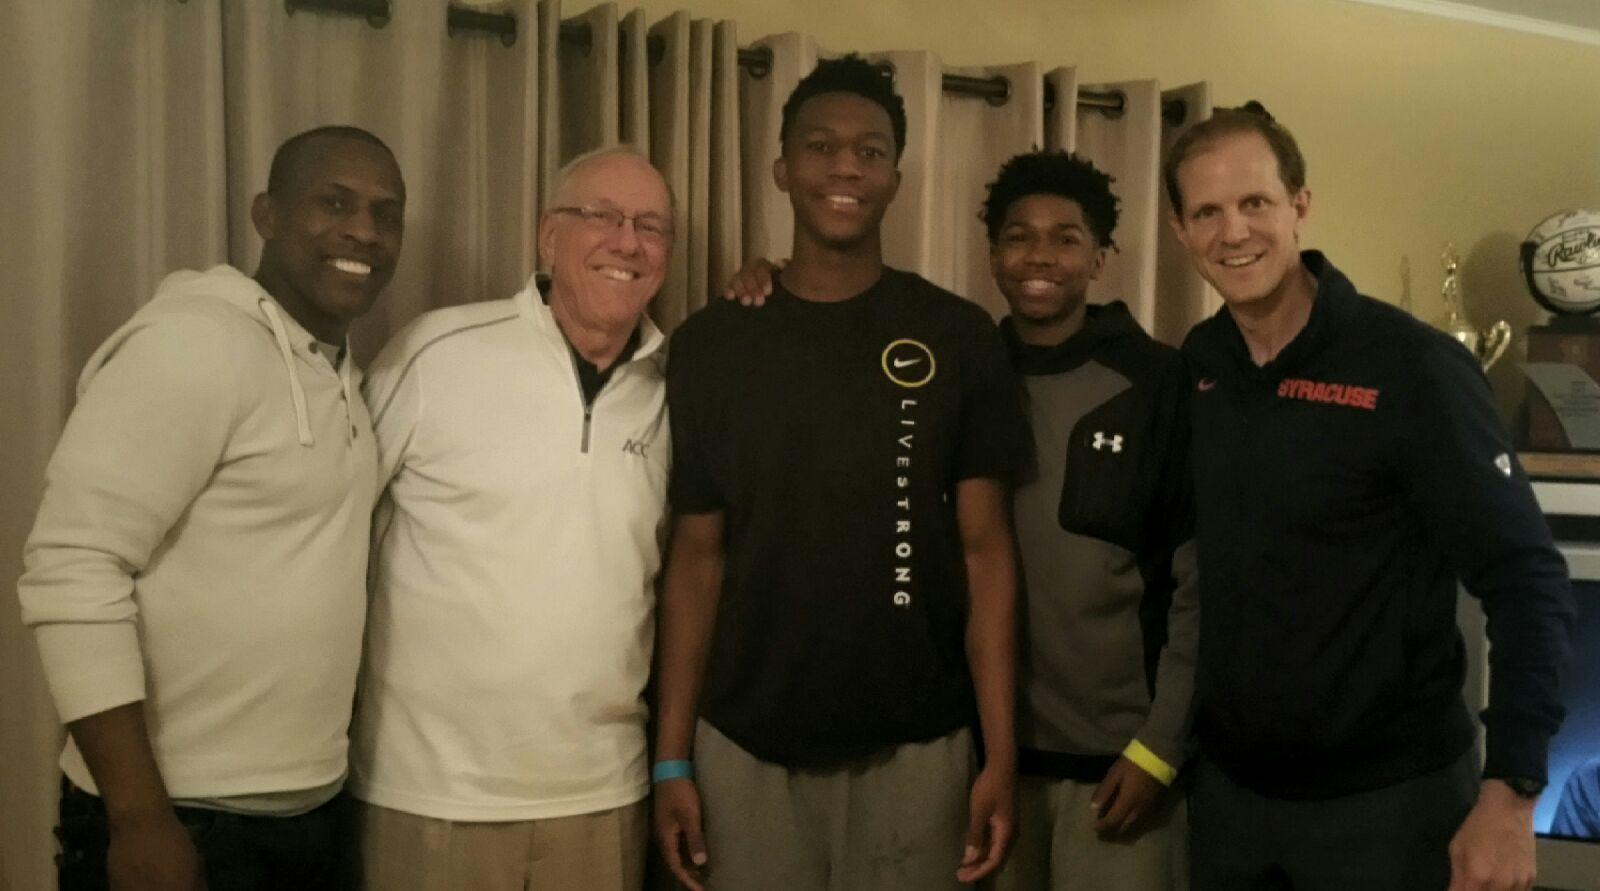 Gary Battle, from left, Syracuse coach Jim Boeheim, Tyus Battle, Khlaif Battle and Syracuse assistant Mike Hopkins Photo: Provided)